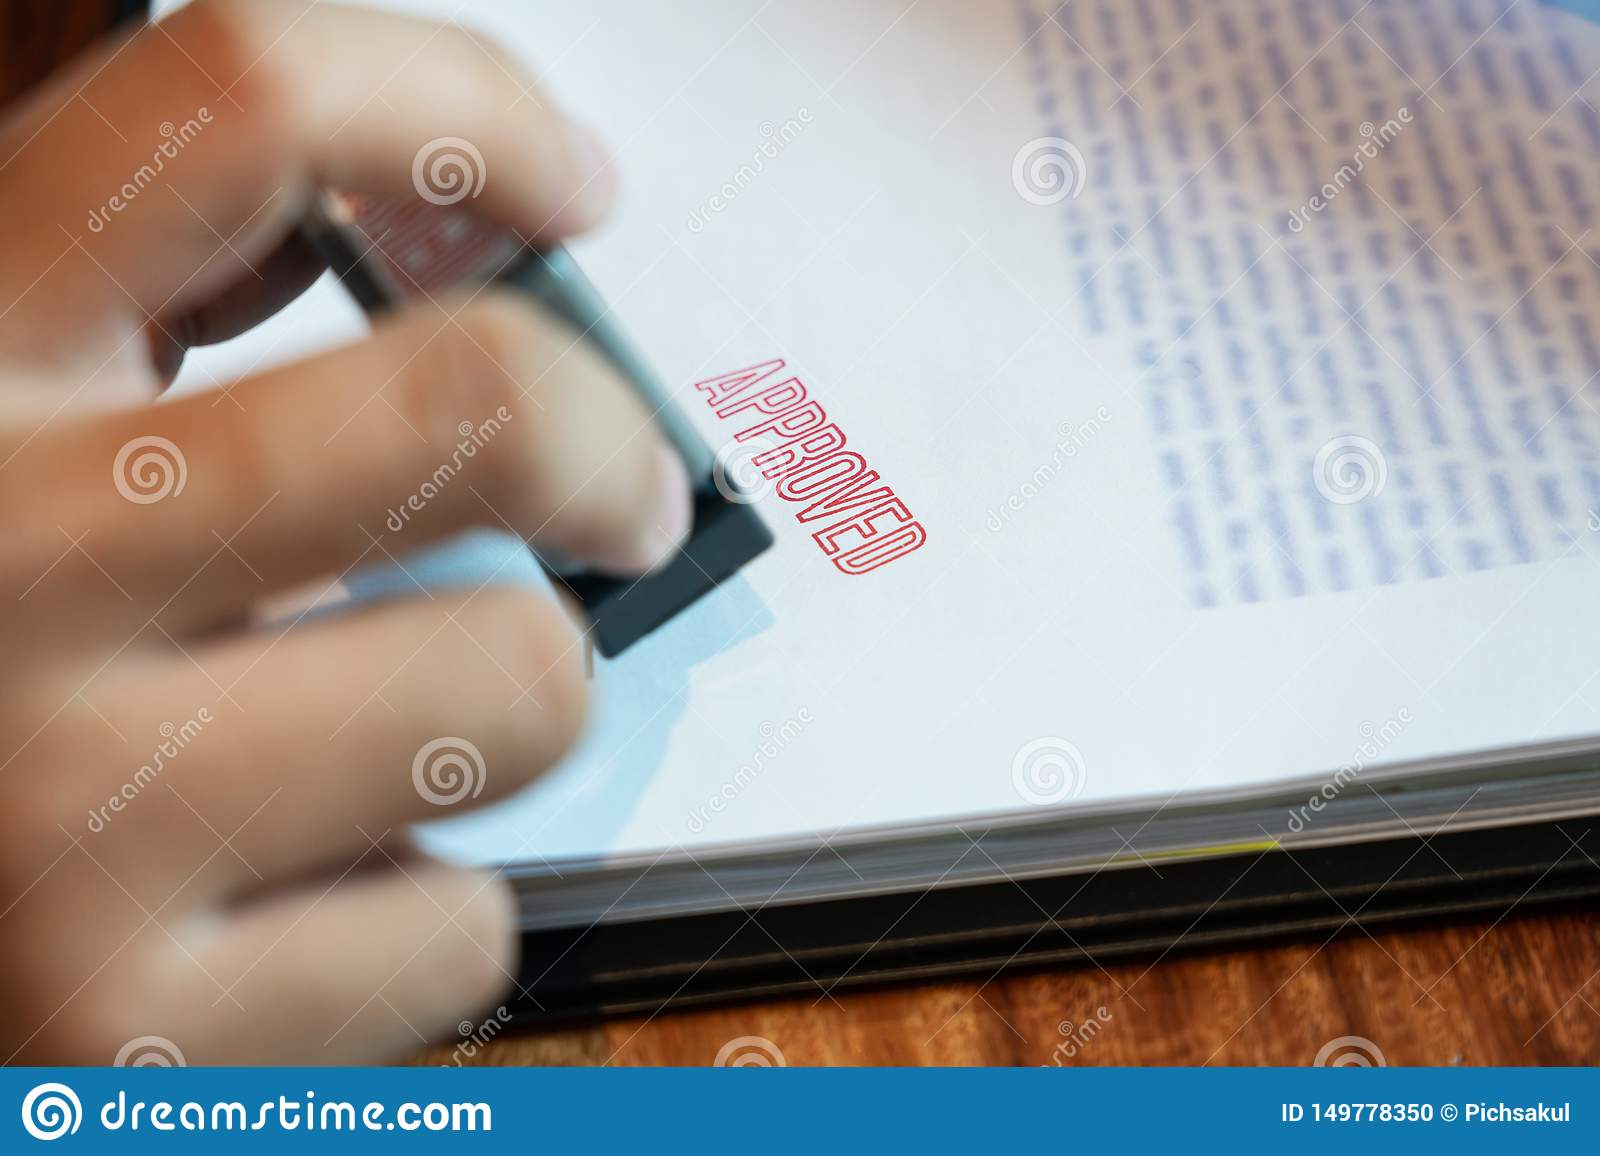 Businessman Hand notary public hand ink appoval stamper Stamping seal On Approved Contract Form documents contract, loan money